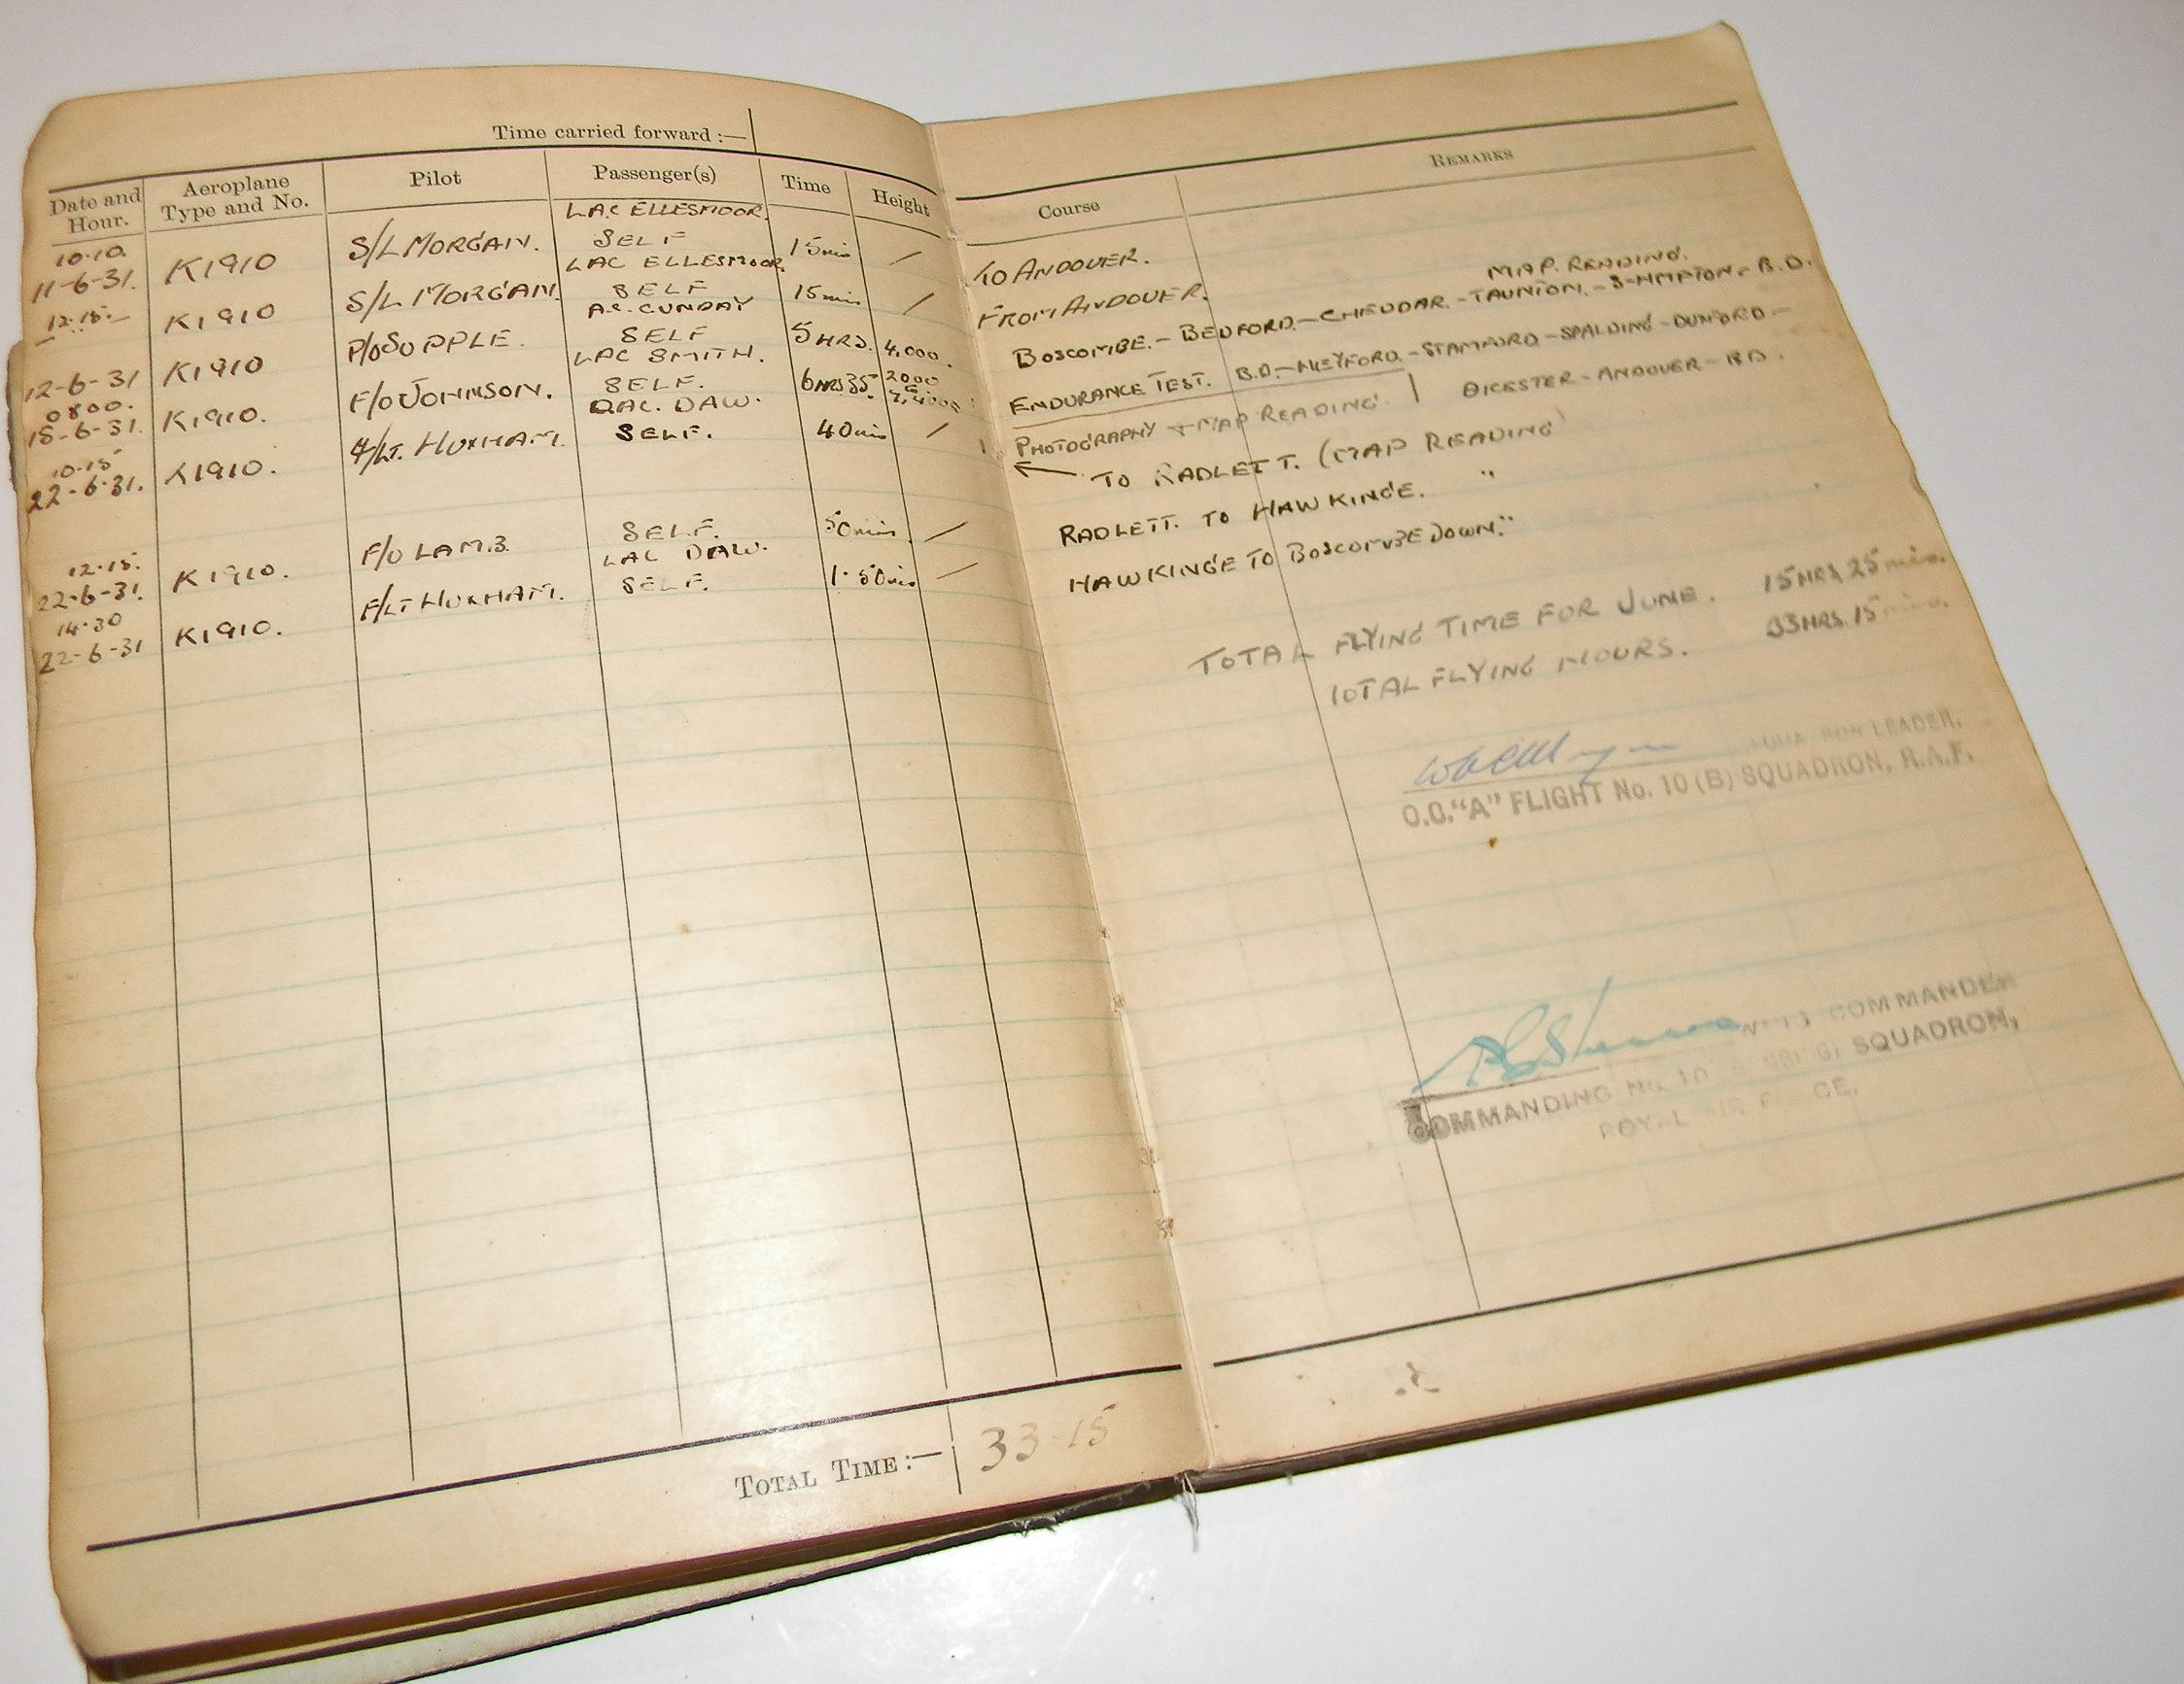 Jones log book 4